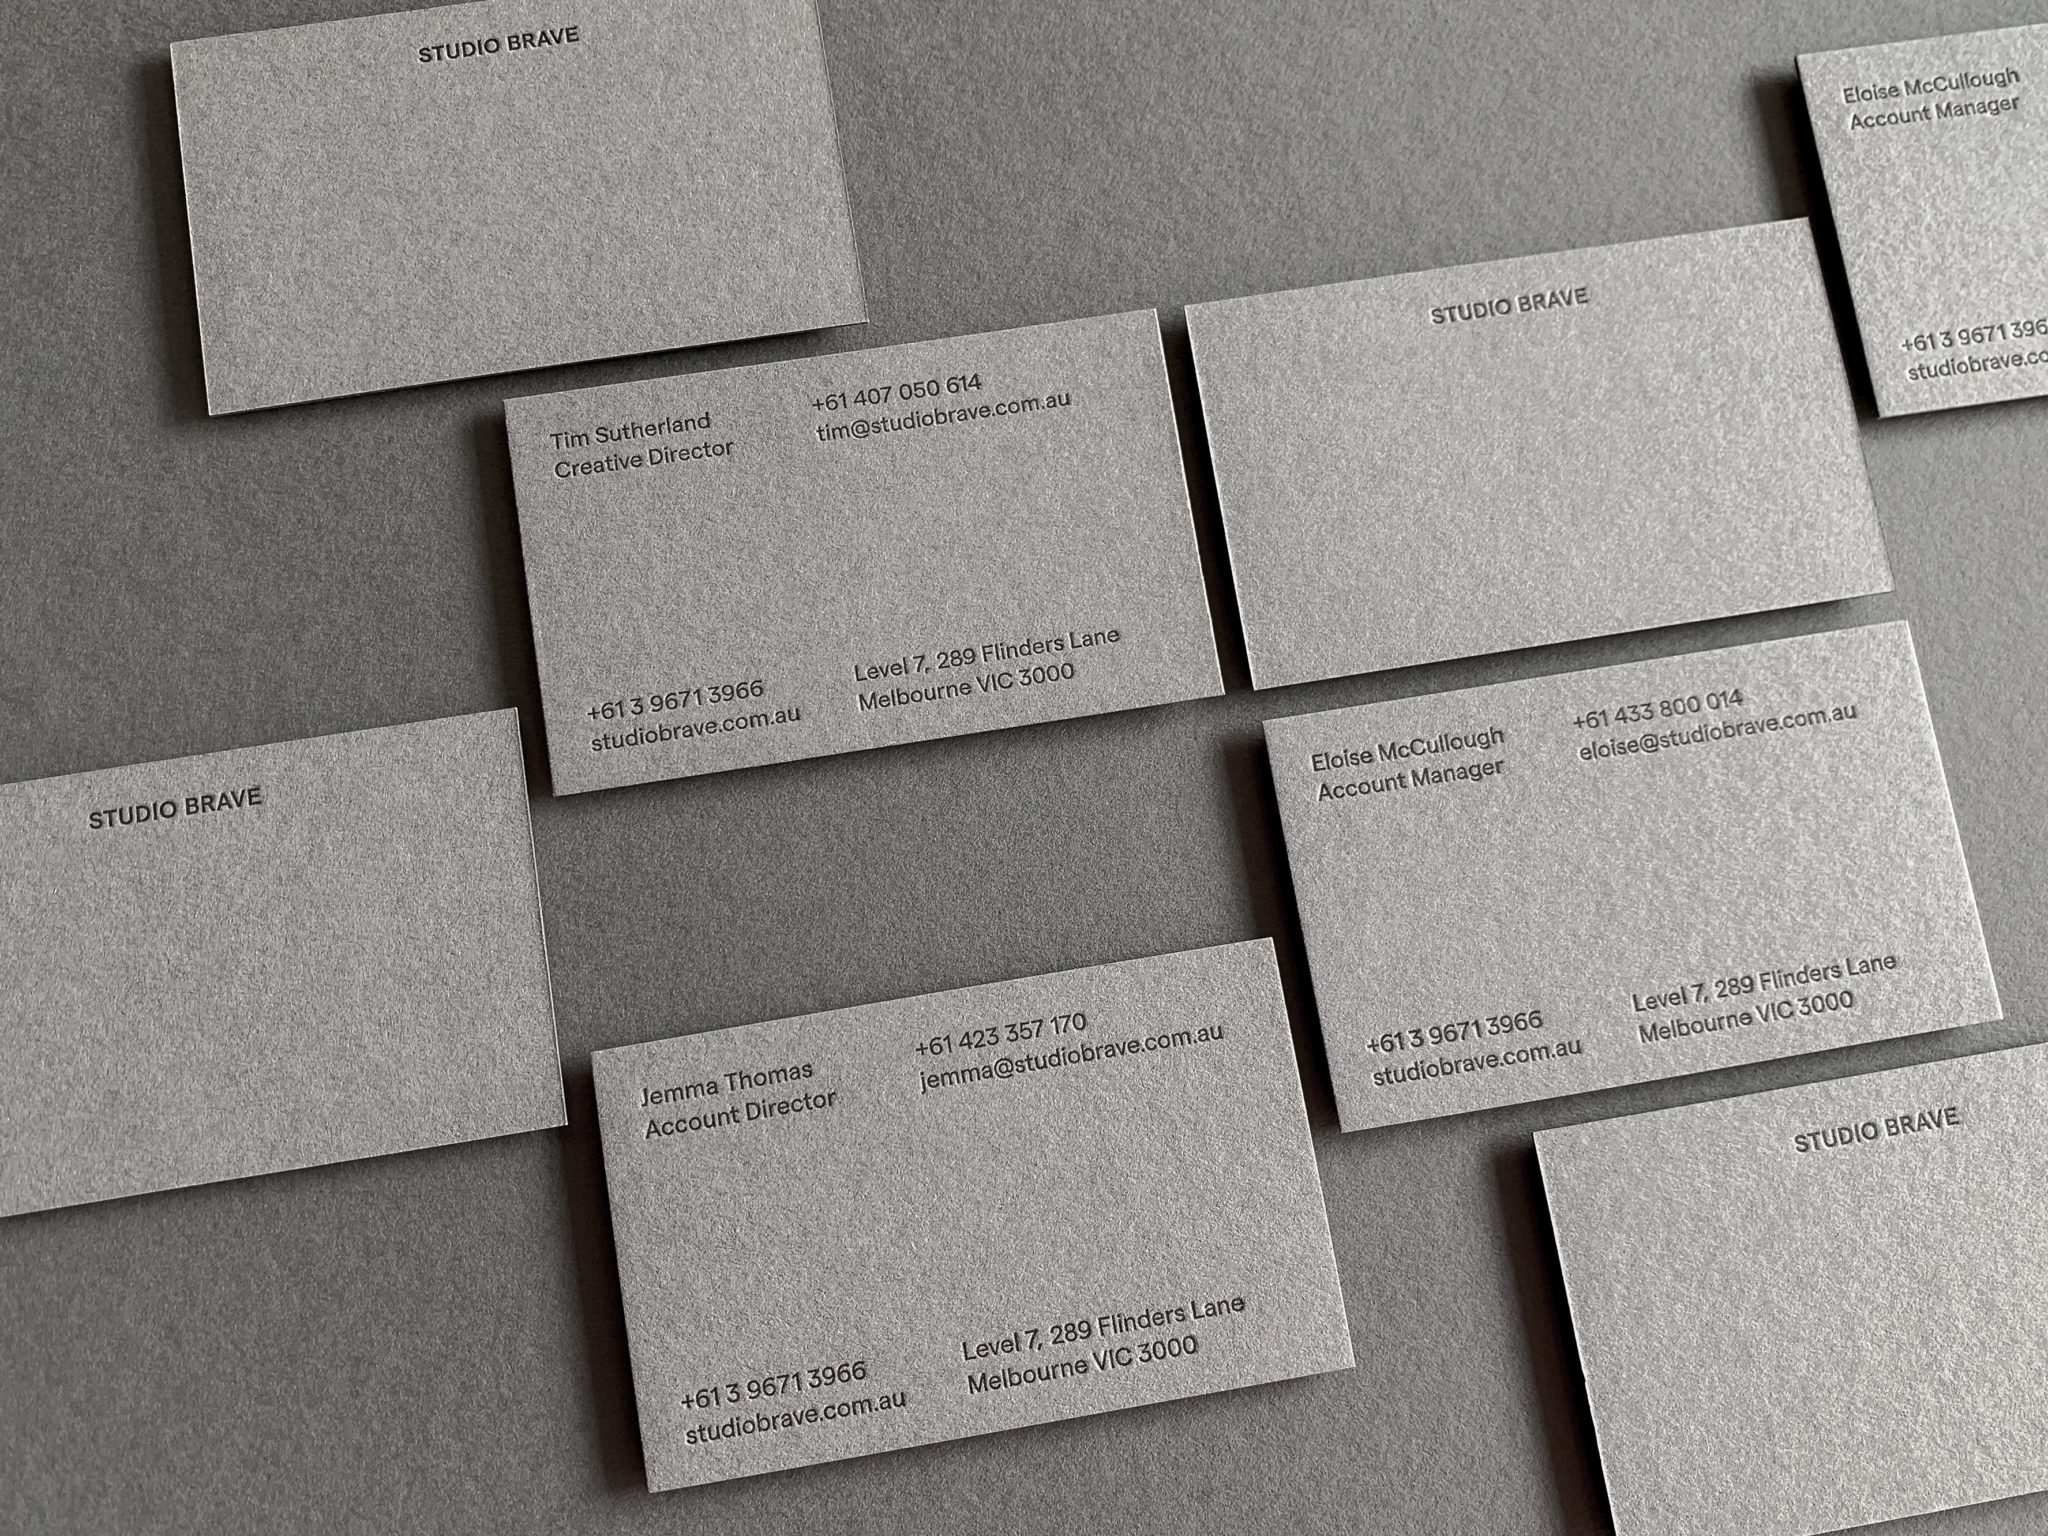 Letterpress Business Card for Studio Brave on Colorplan Smoke 4